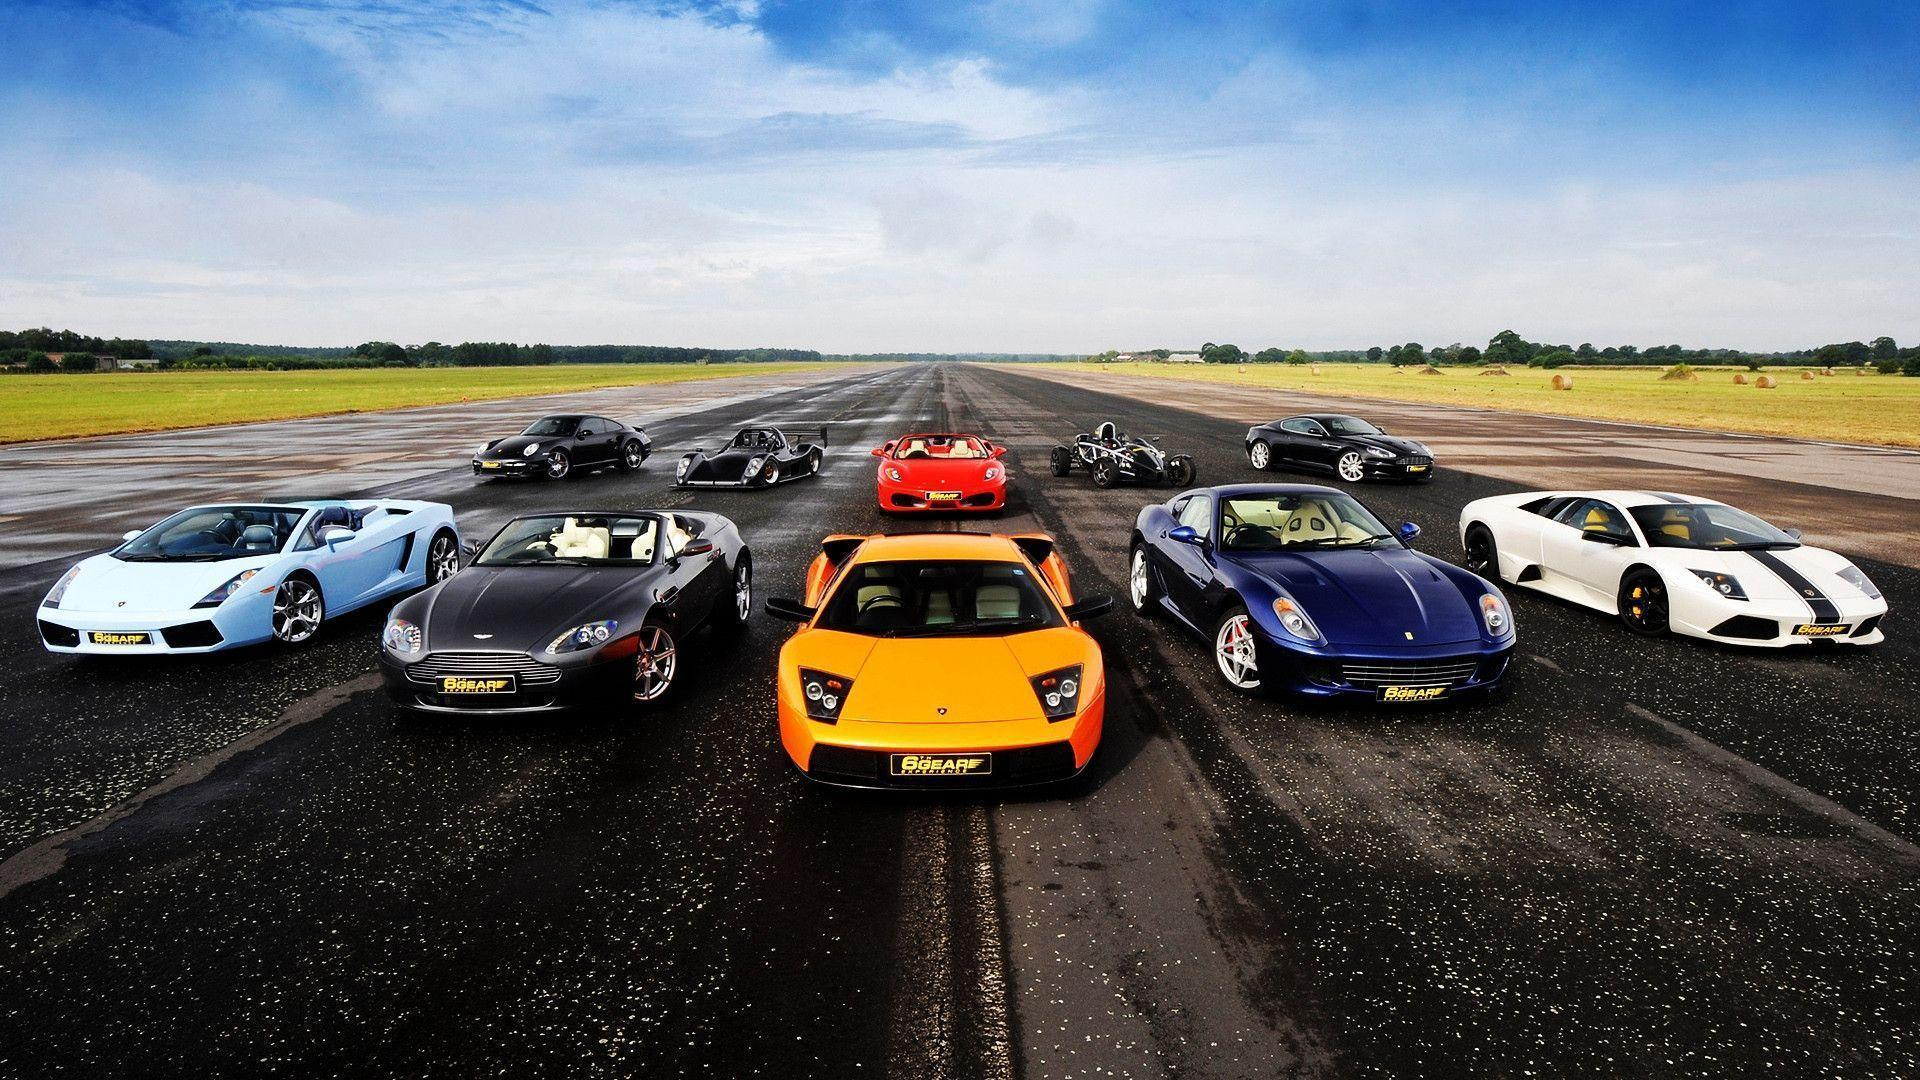 Super Car Wallpapers Hd For Android Apk Download